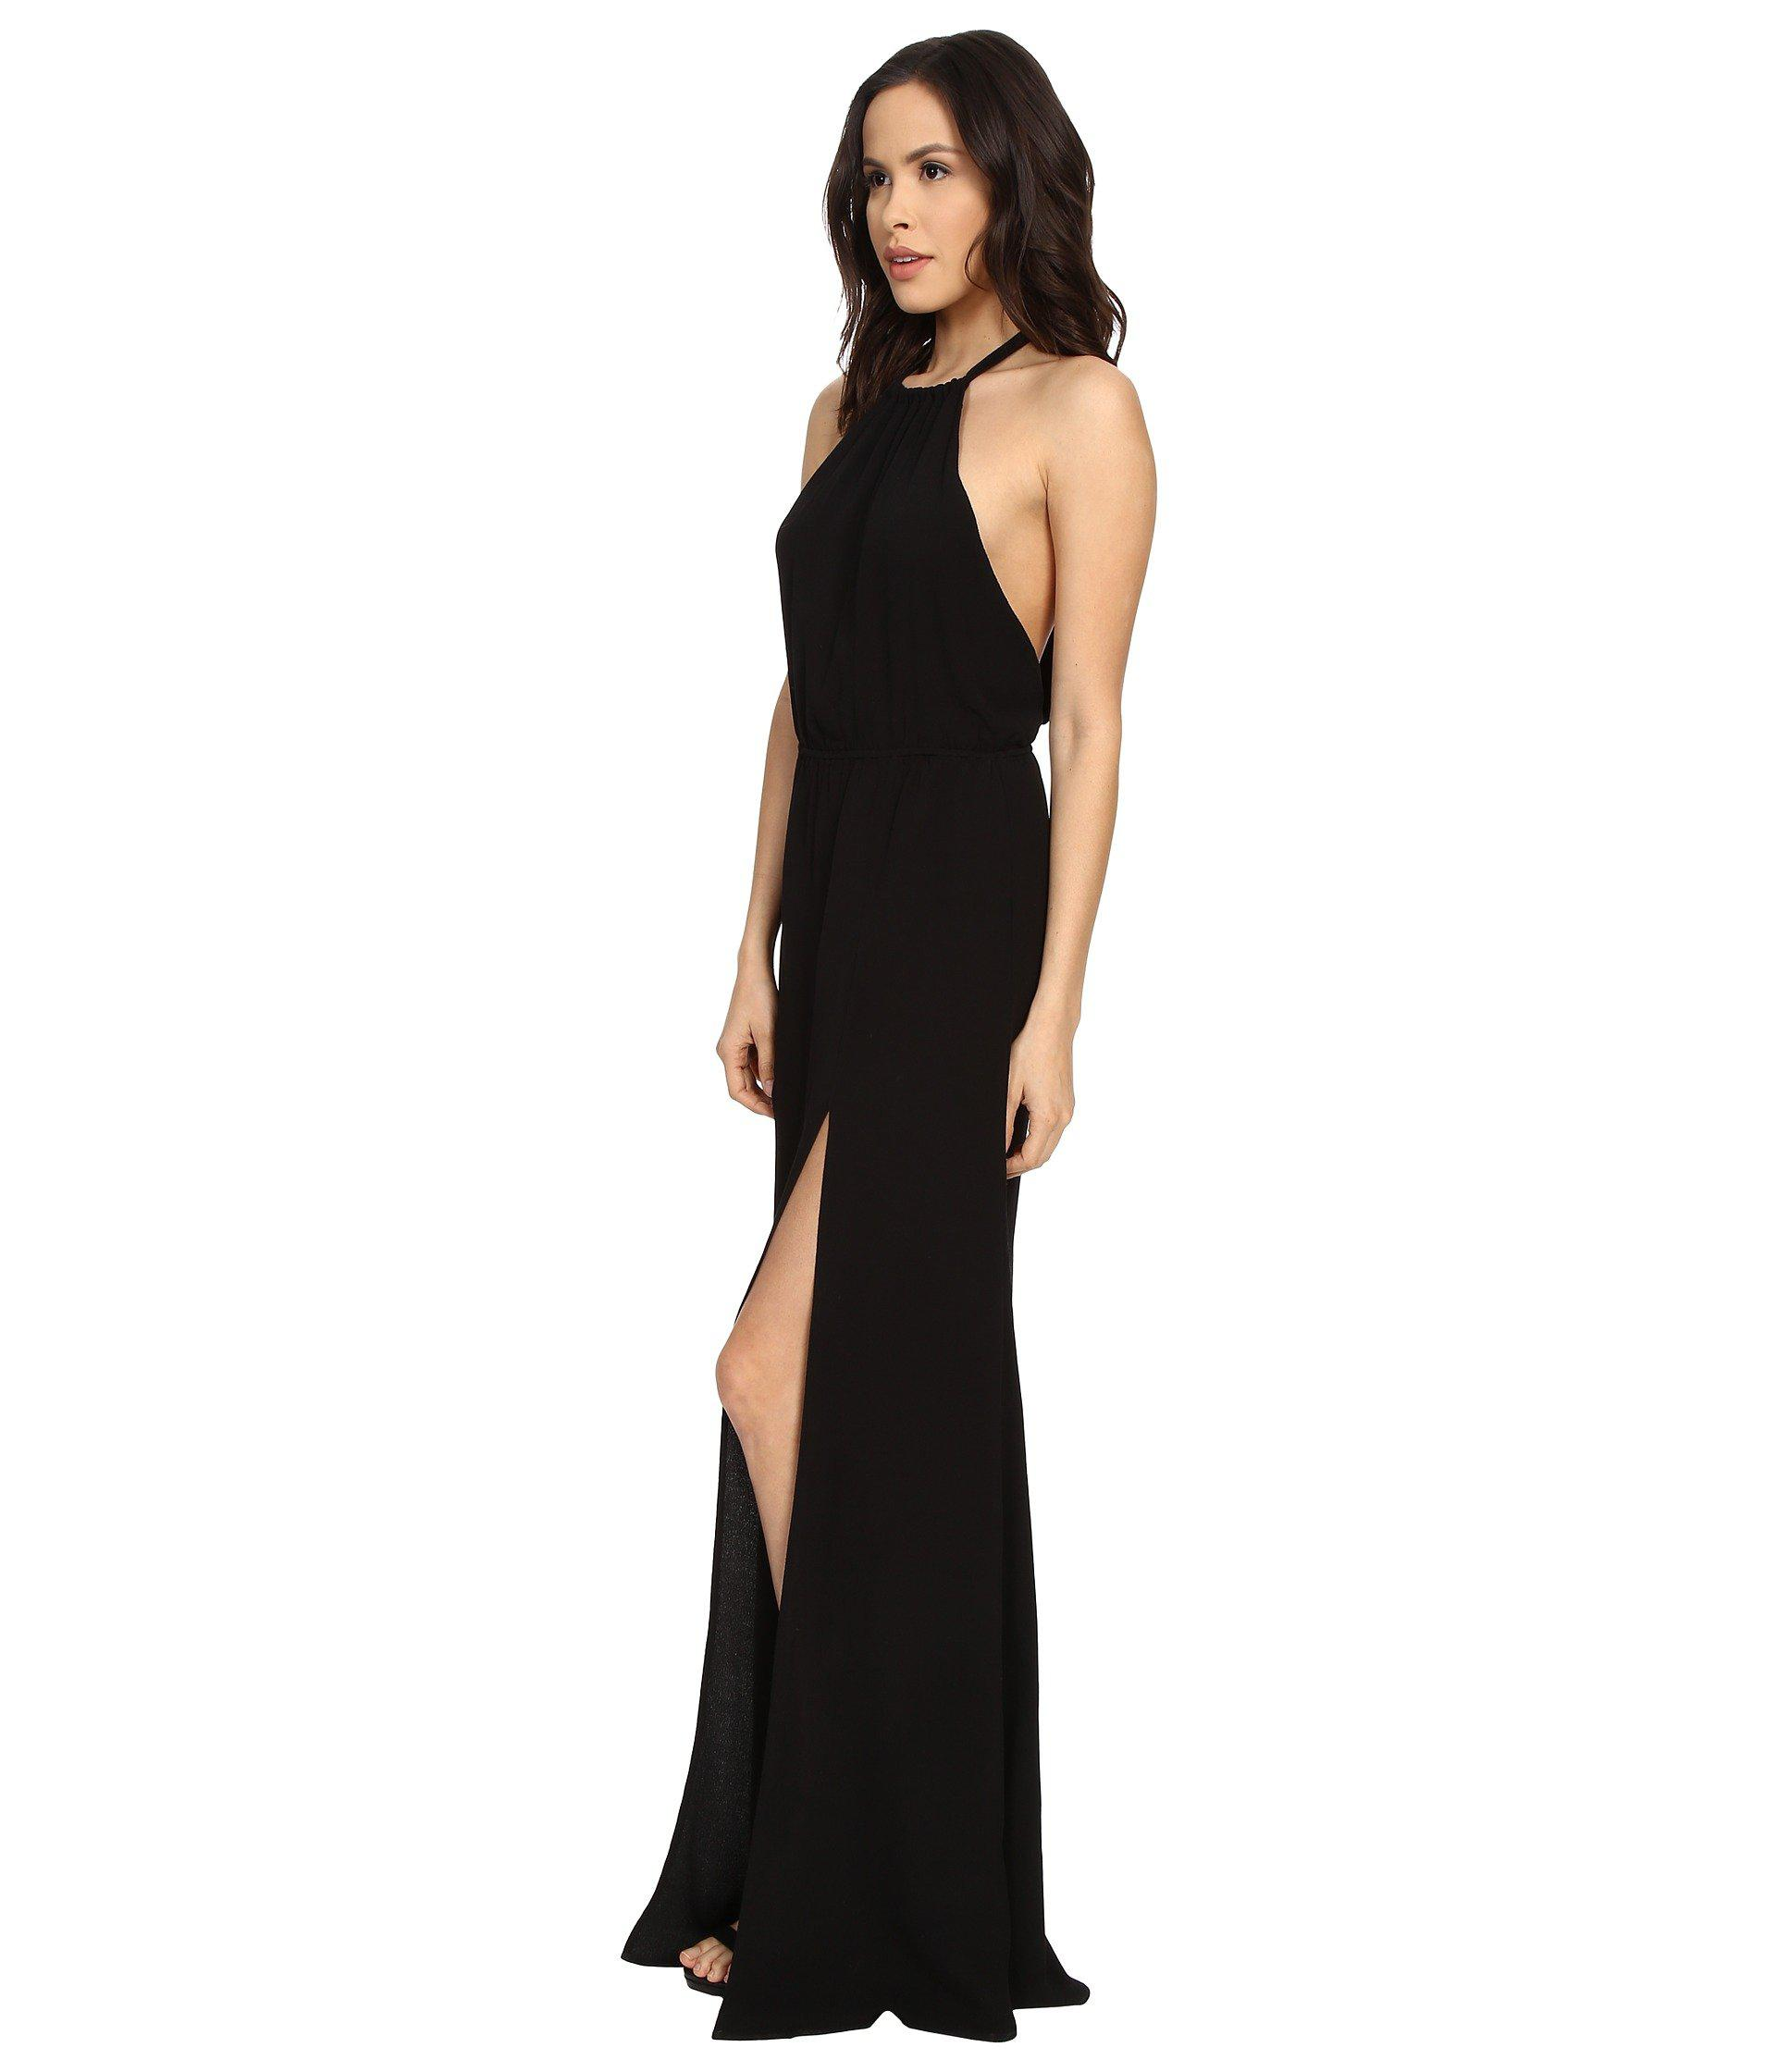 Lyst - Stone Cold Fox Onyx Gown in Black